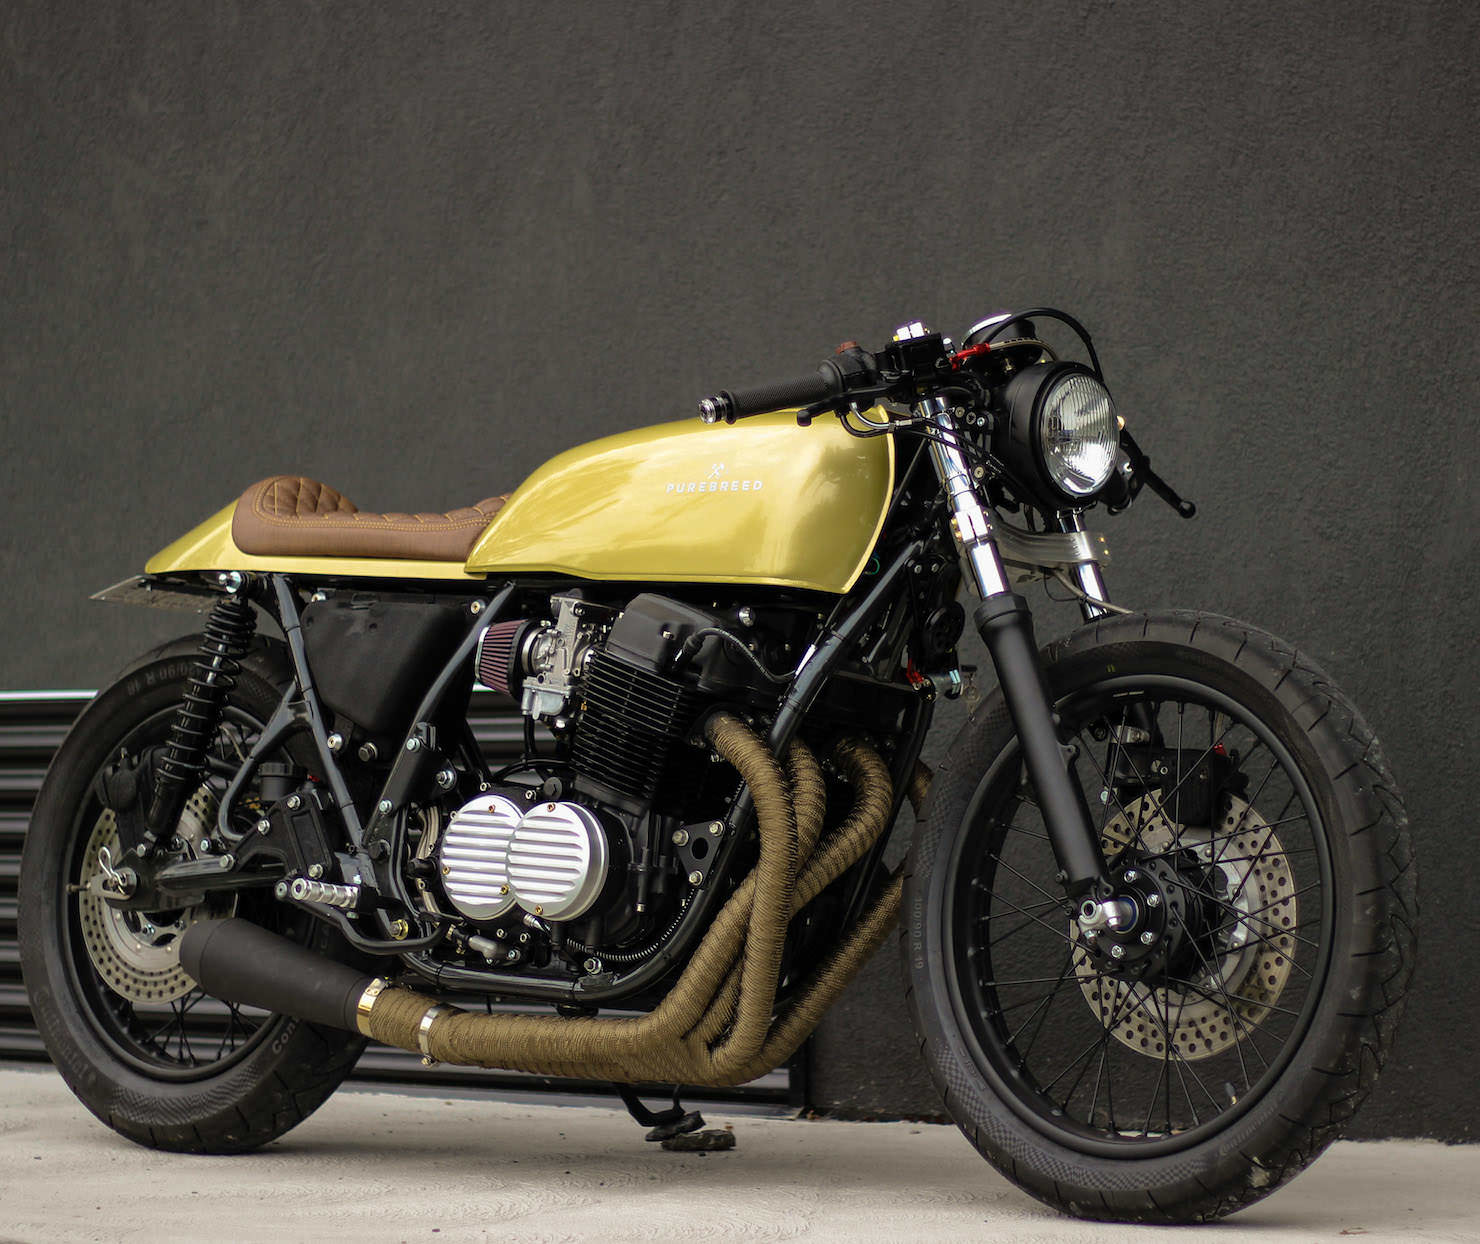 honda cb750 custom by purebreed fine motorcycles. Black Bedroom Furniture Sets. Home Design Ideas